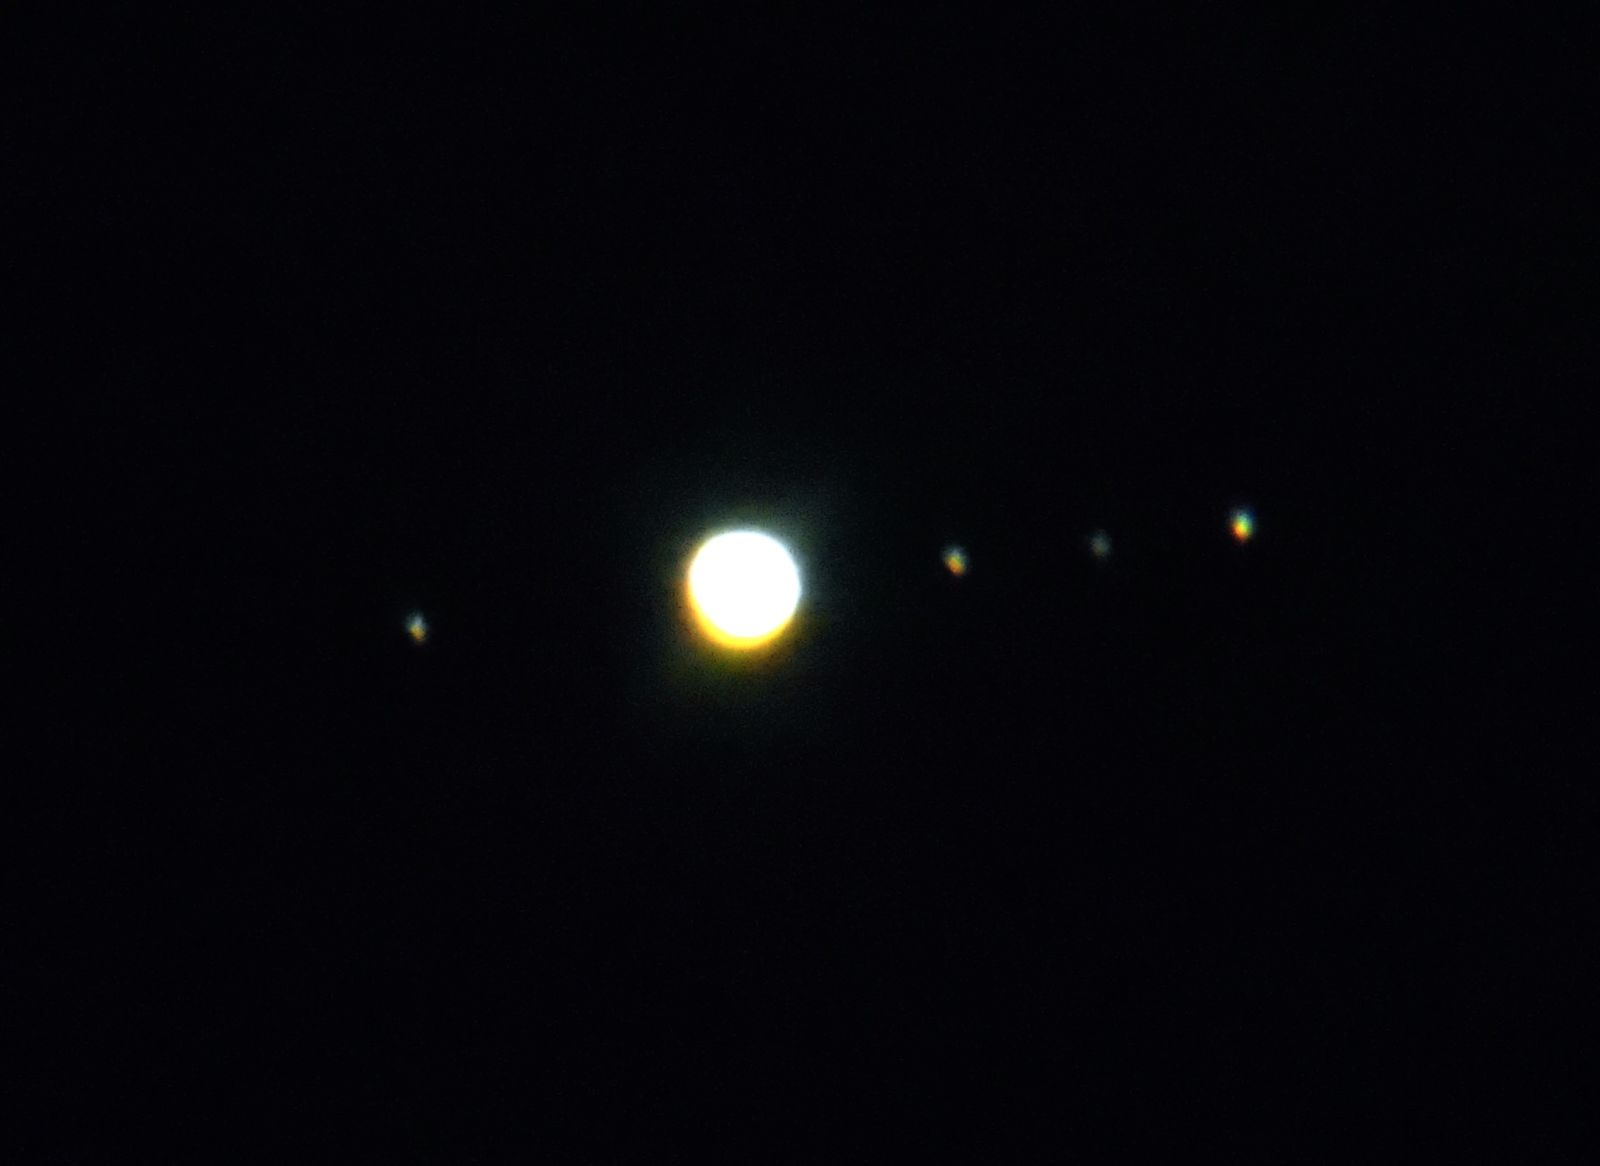 the galilean moons The four galilean moons are so named because they were discovered by galileo galilei using his early telescope.